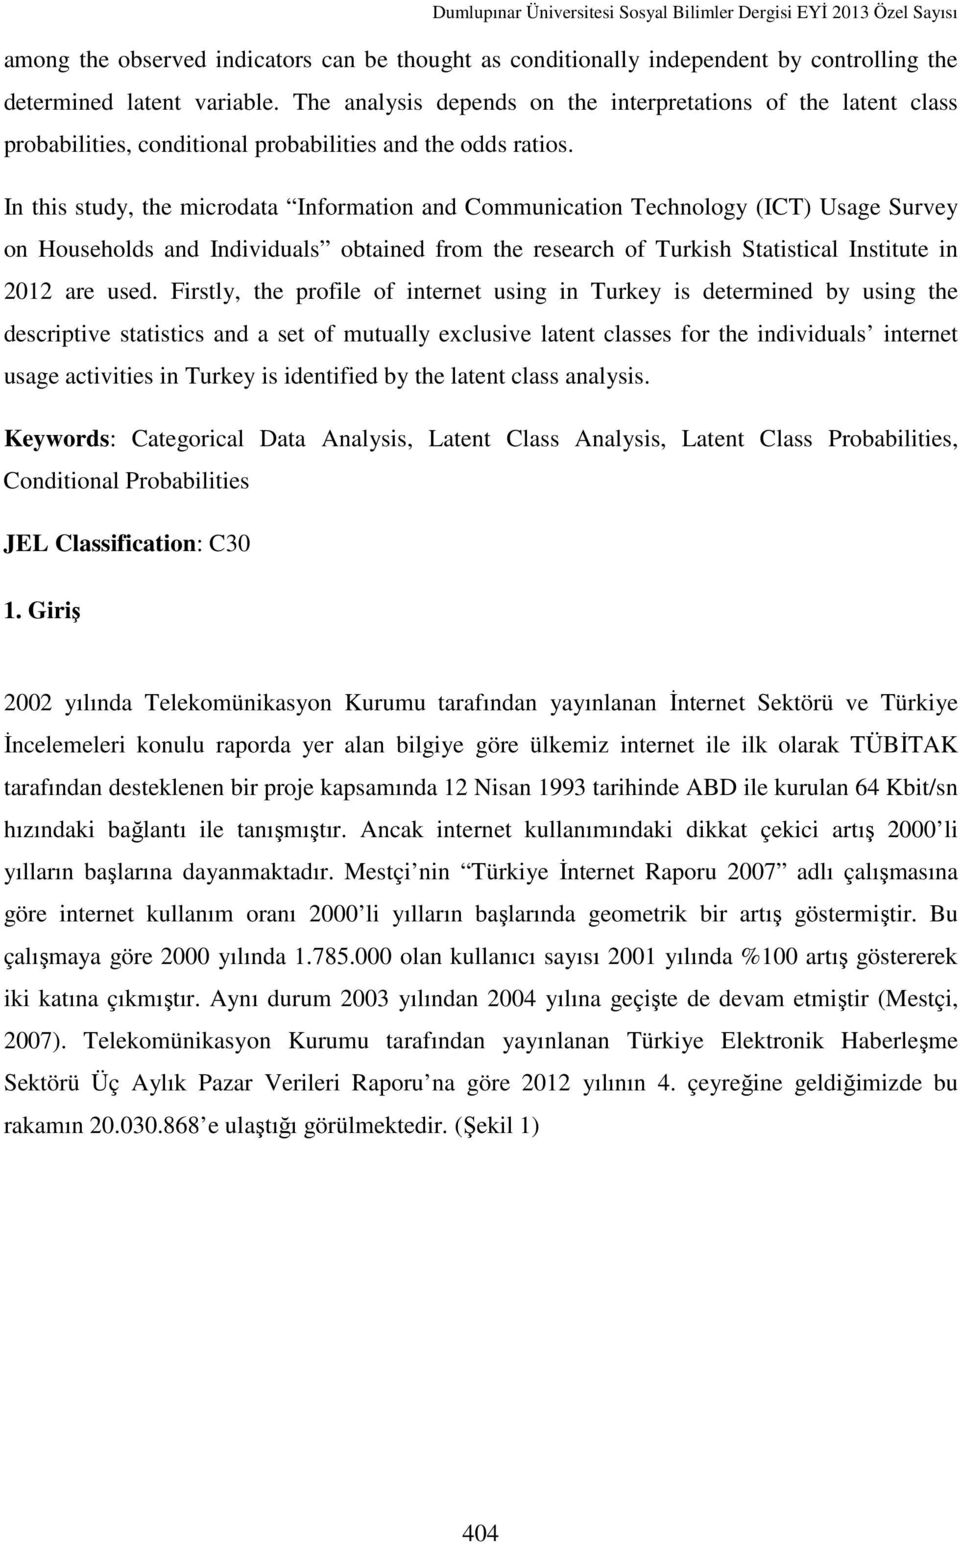 In this study, the microdata Information and Communication Technology (ICT) Usage Survey on Households and Individuals obtained from the research of Turkish Statistical Institute in 2012 are used.